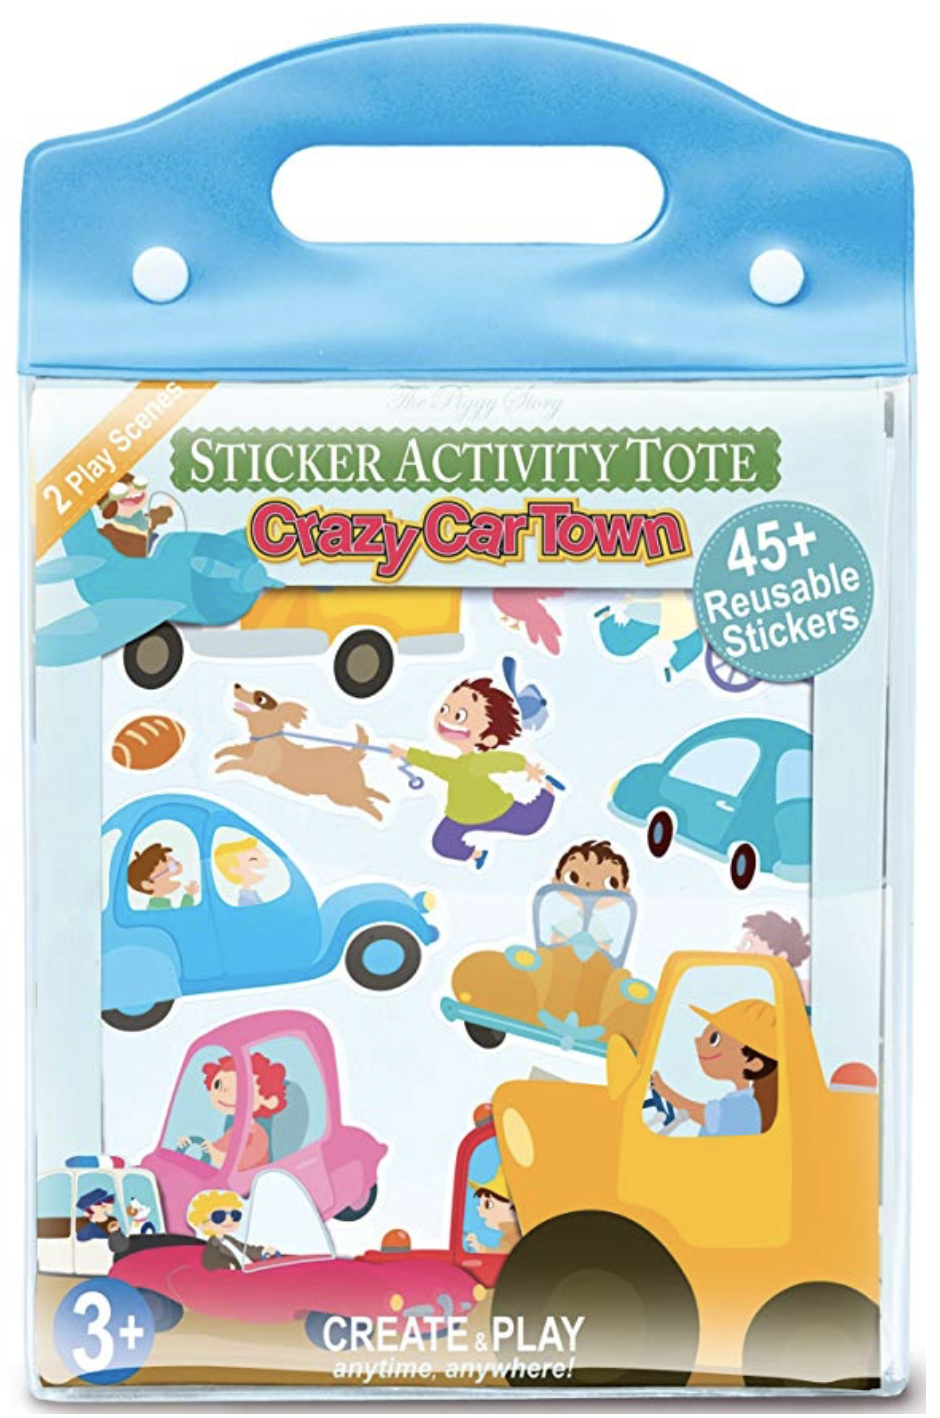 Stocking Stuffers For Toddlers - Clin g-On Stickers